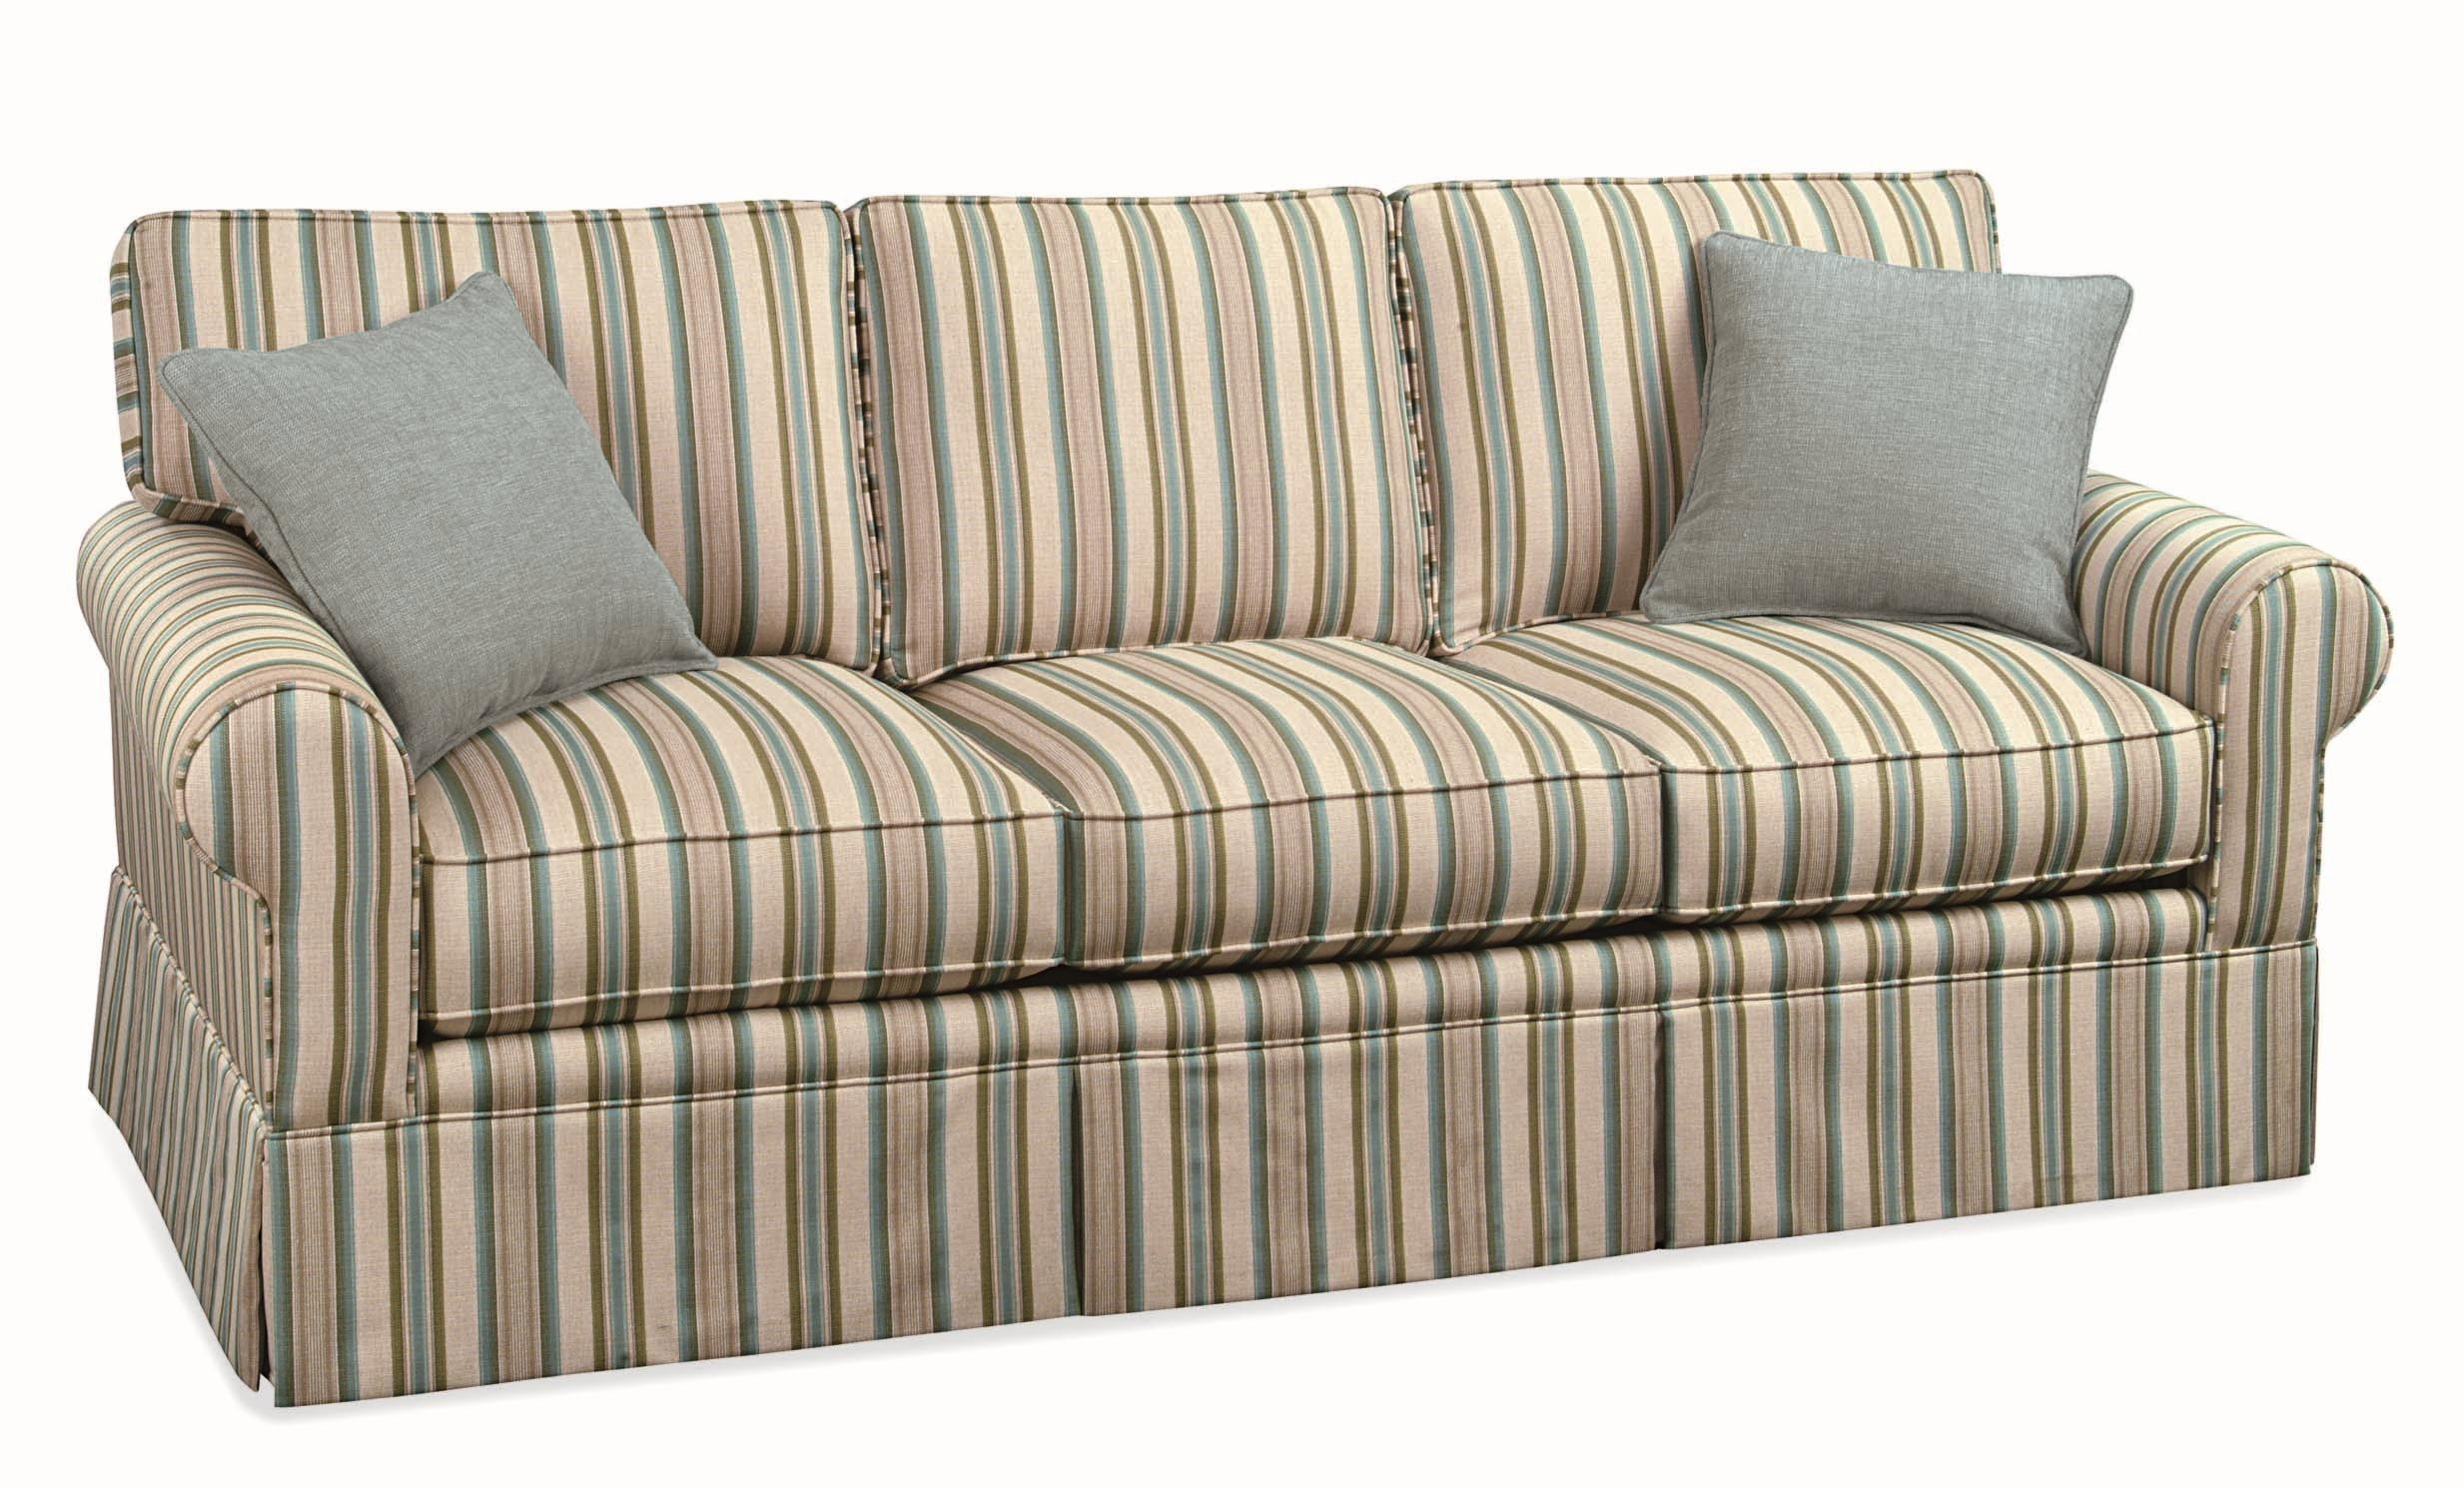 Braxton Culler Benton 628 011 Casual Three Seater Sofa With Rolled Arms And  Skirt | Hudsonu0027s Furniture | Sofa